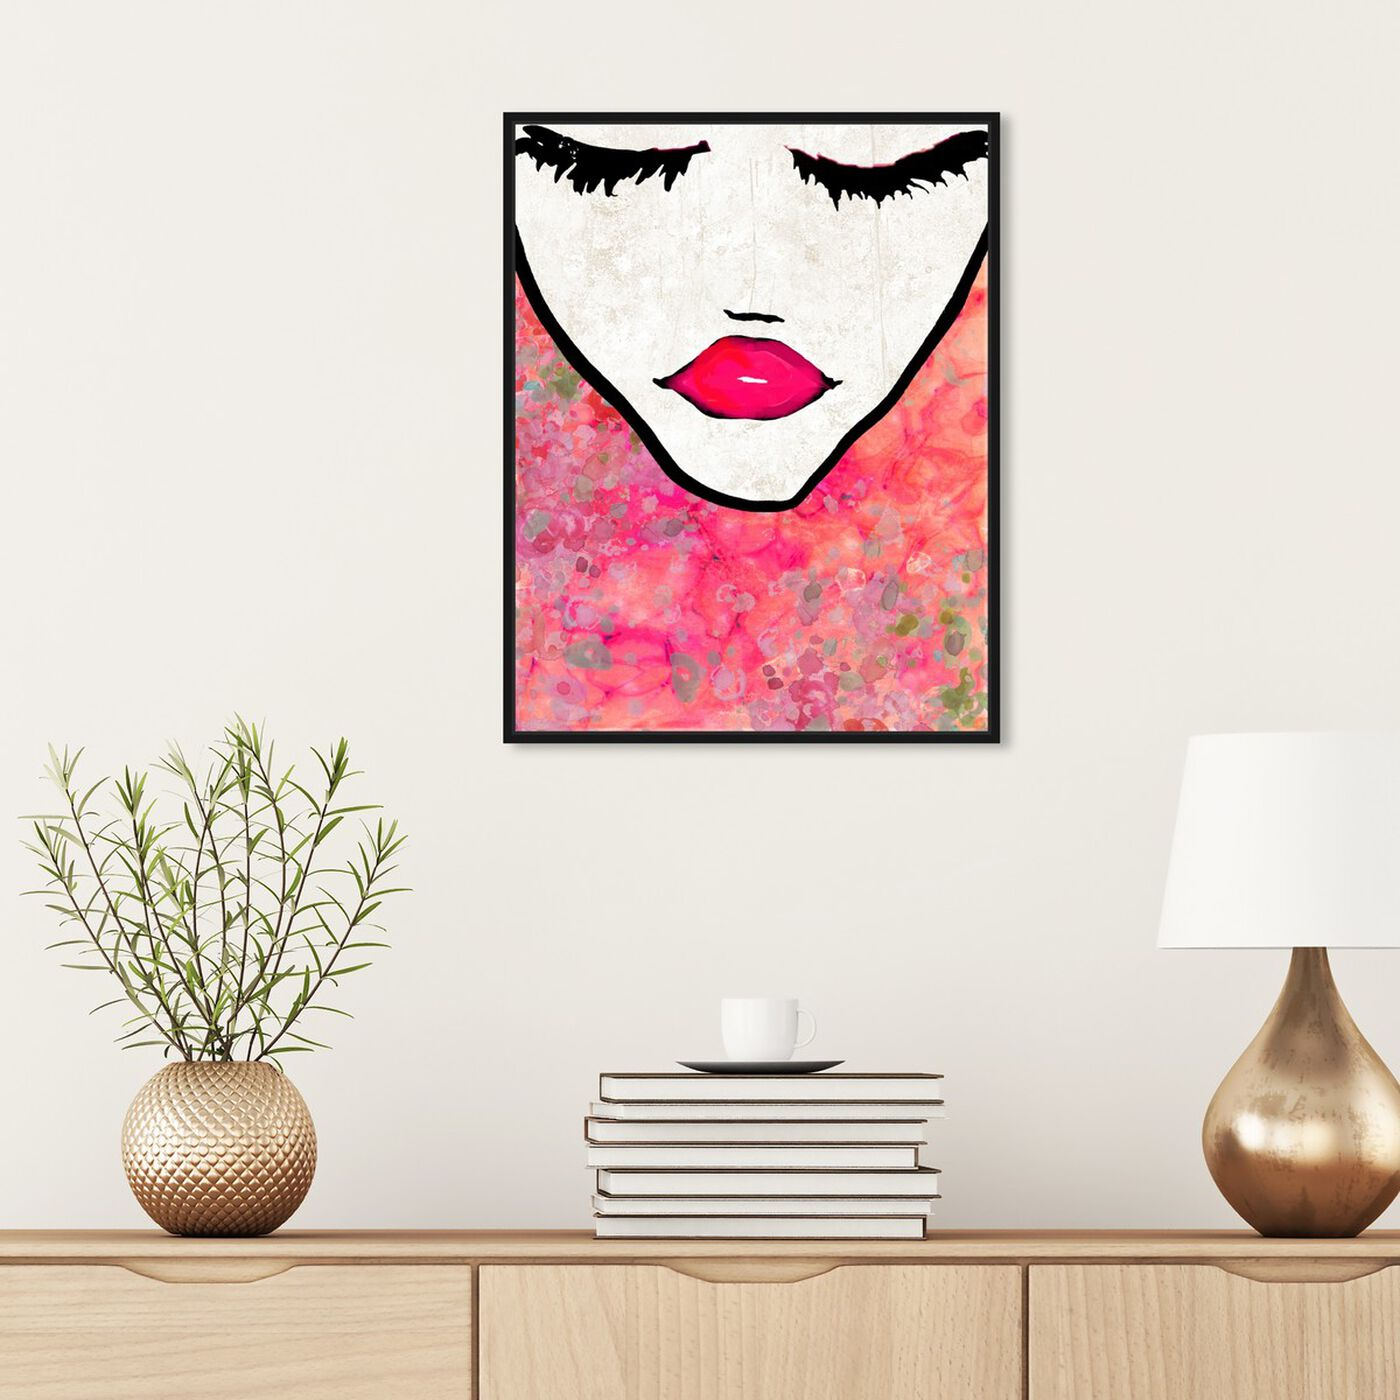 Hanging view of Flower Coveted featuring fashion and glam and portraits art.